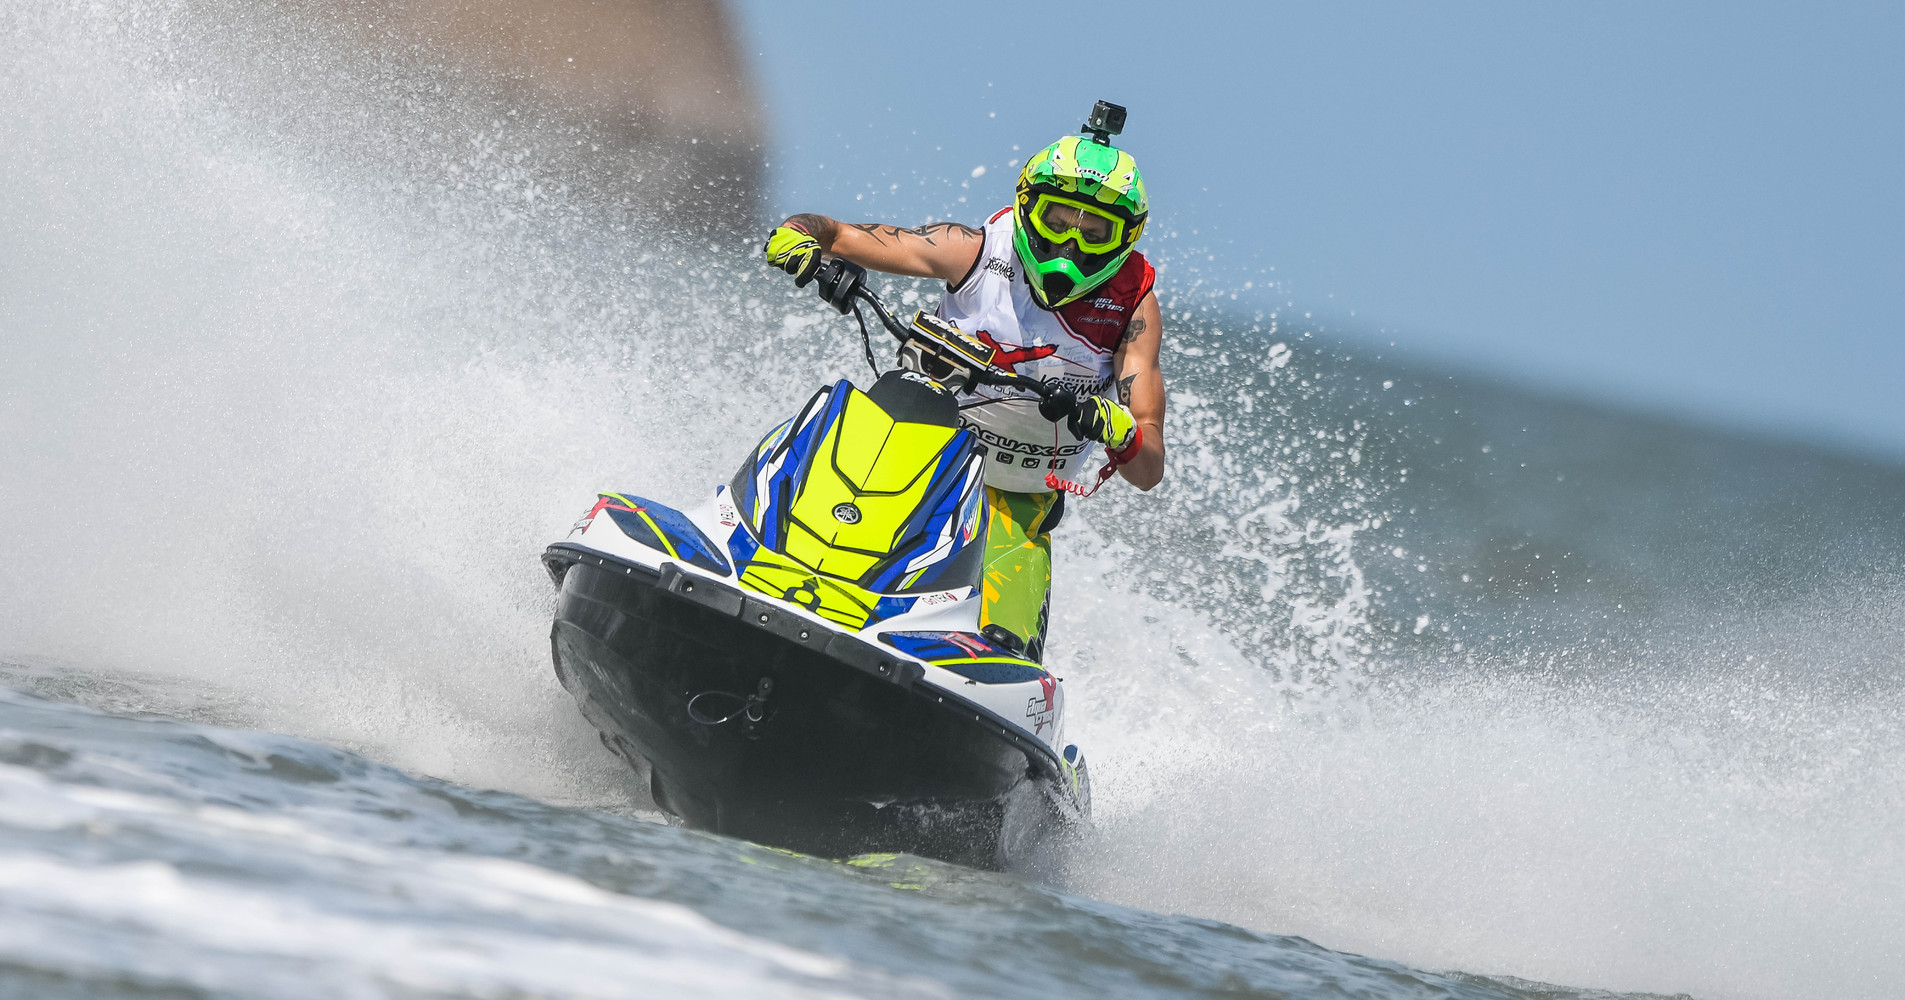 2018 AquaX EuroTour Sprint SE champion - Thibault Olivier on his Yamaha EX